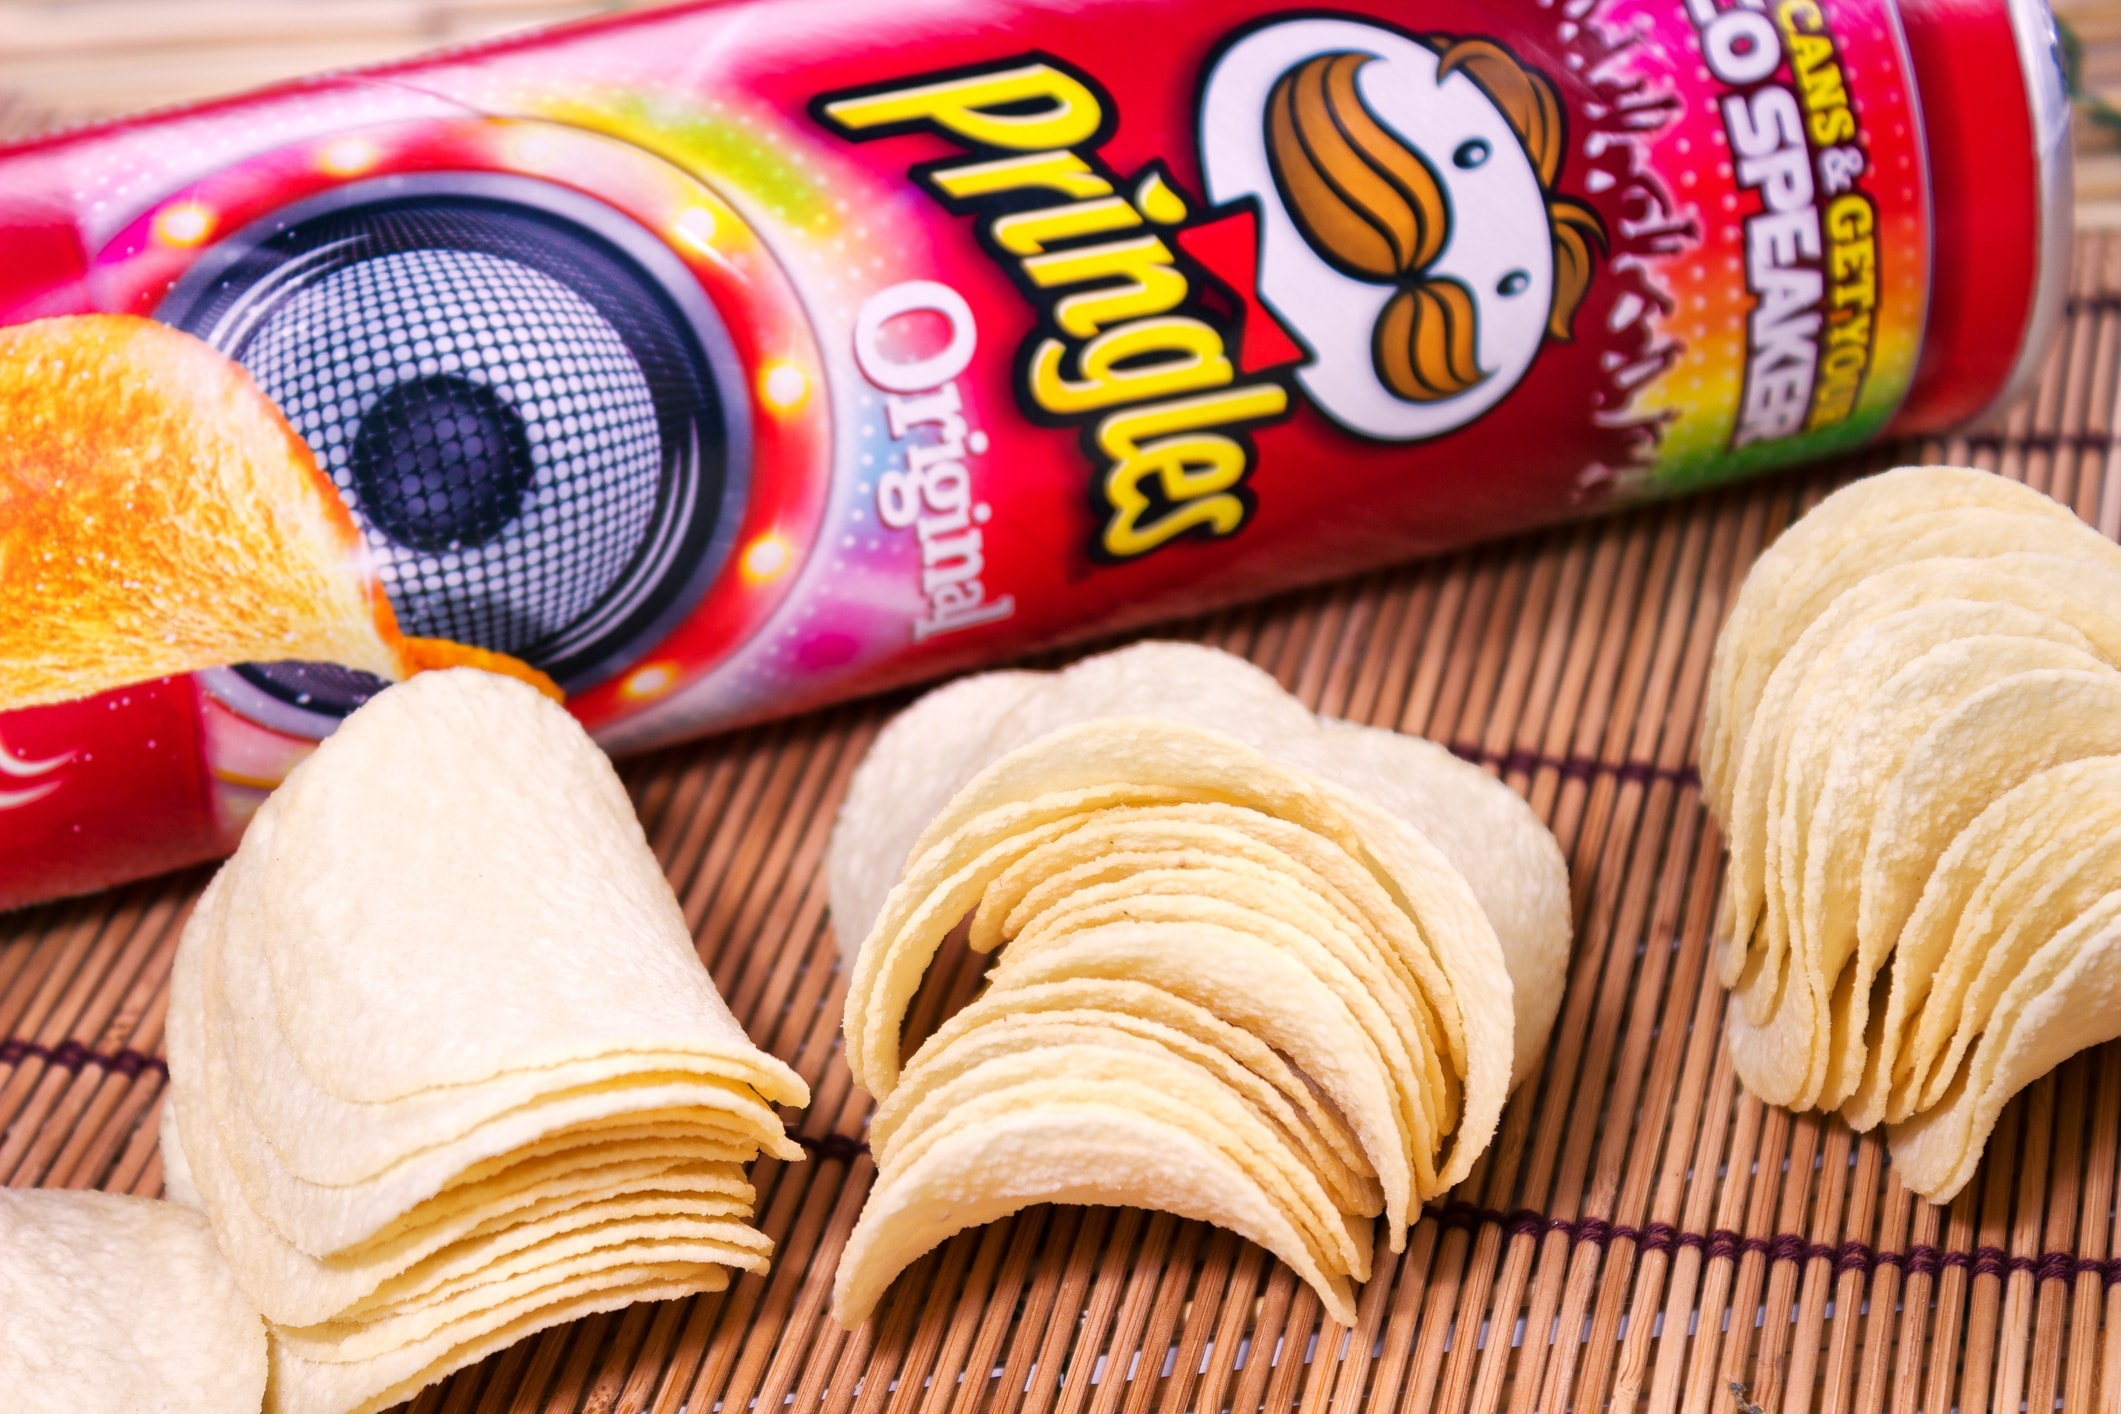 Recycle Pringle Cans?